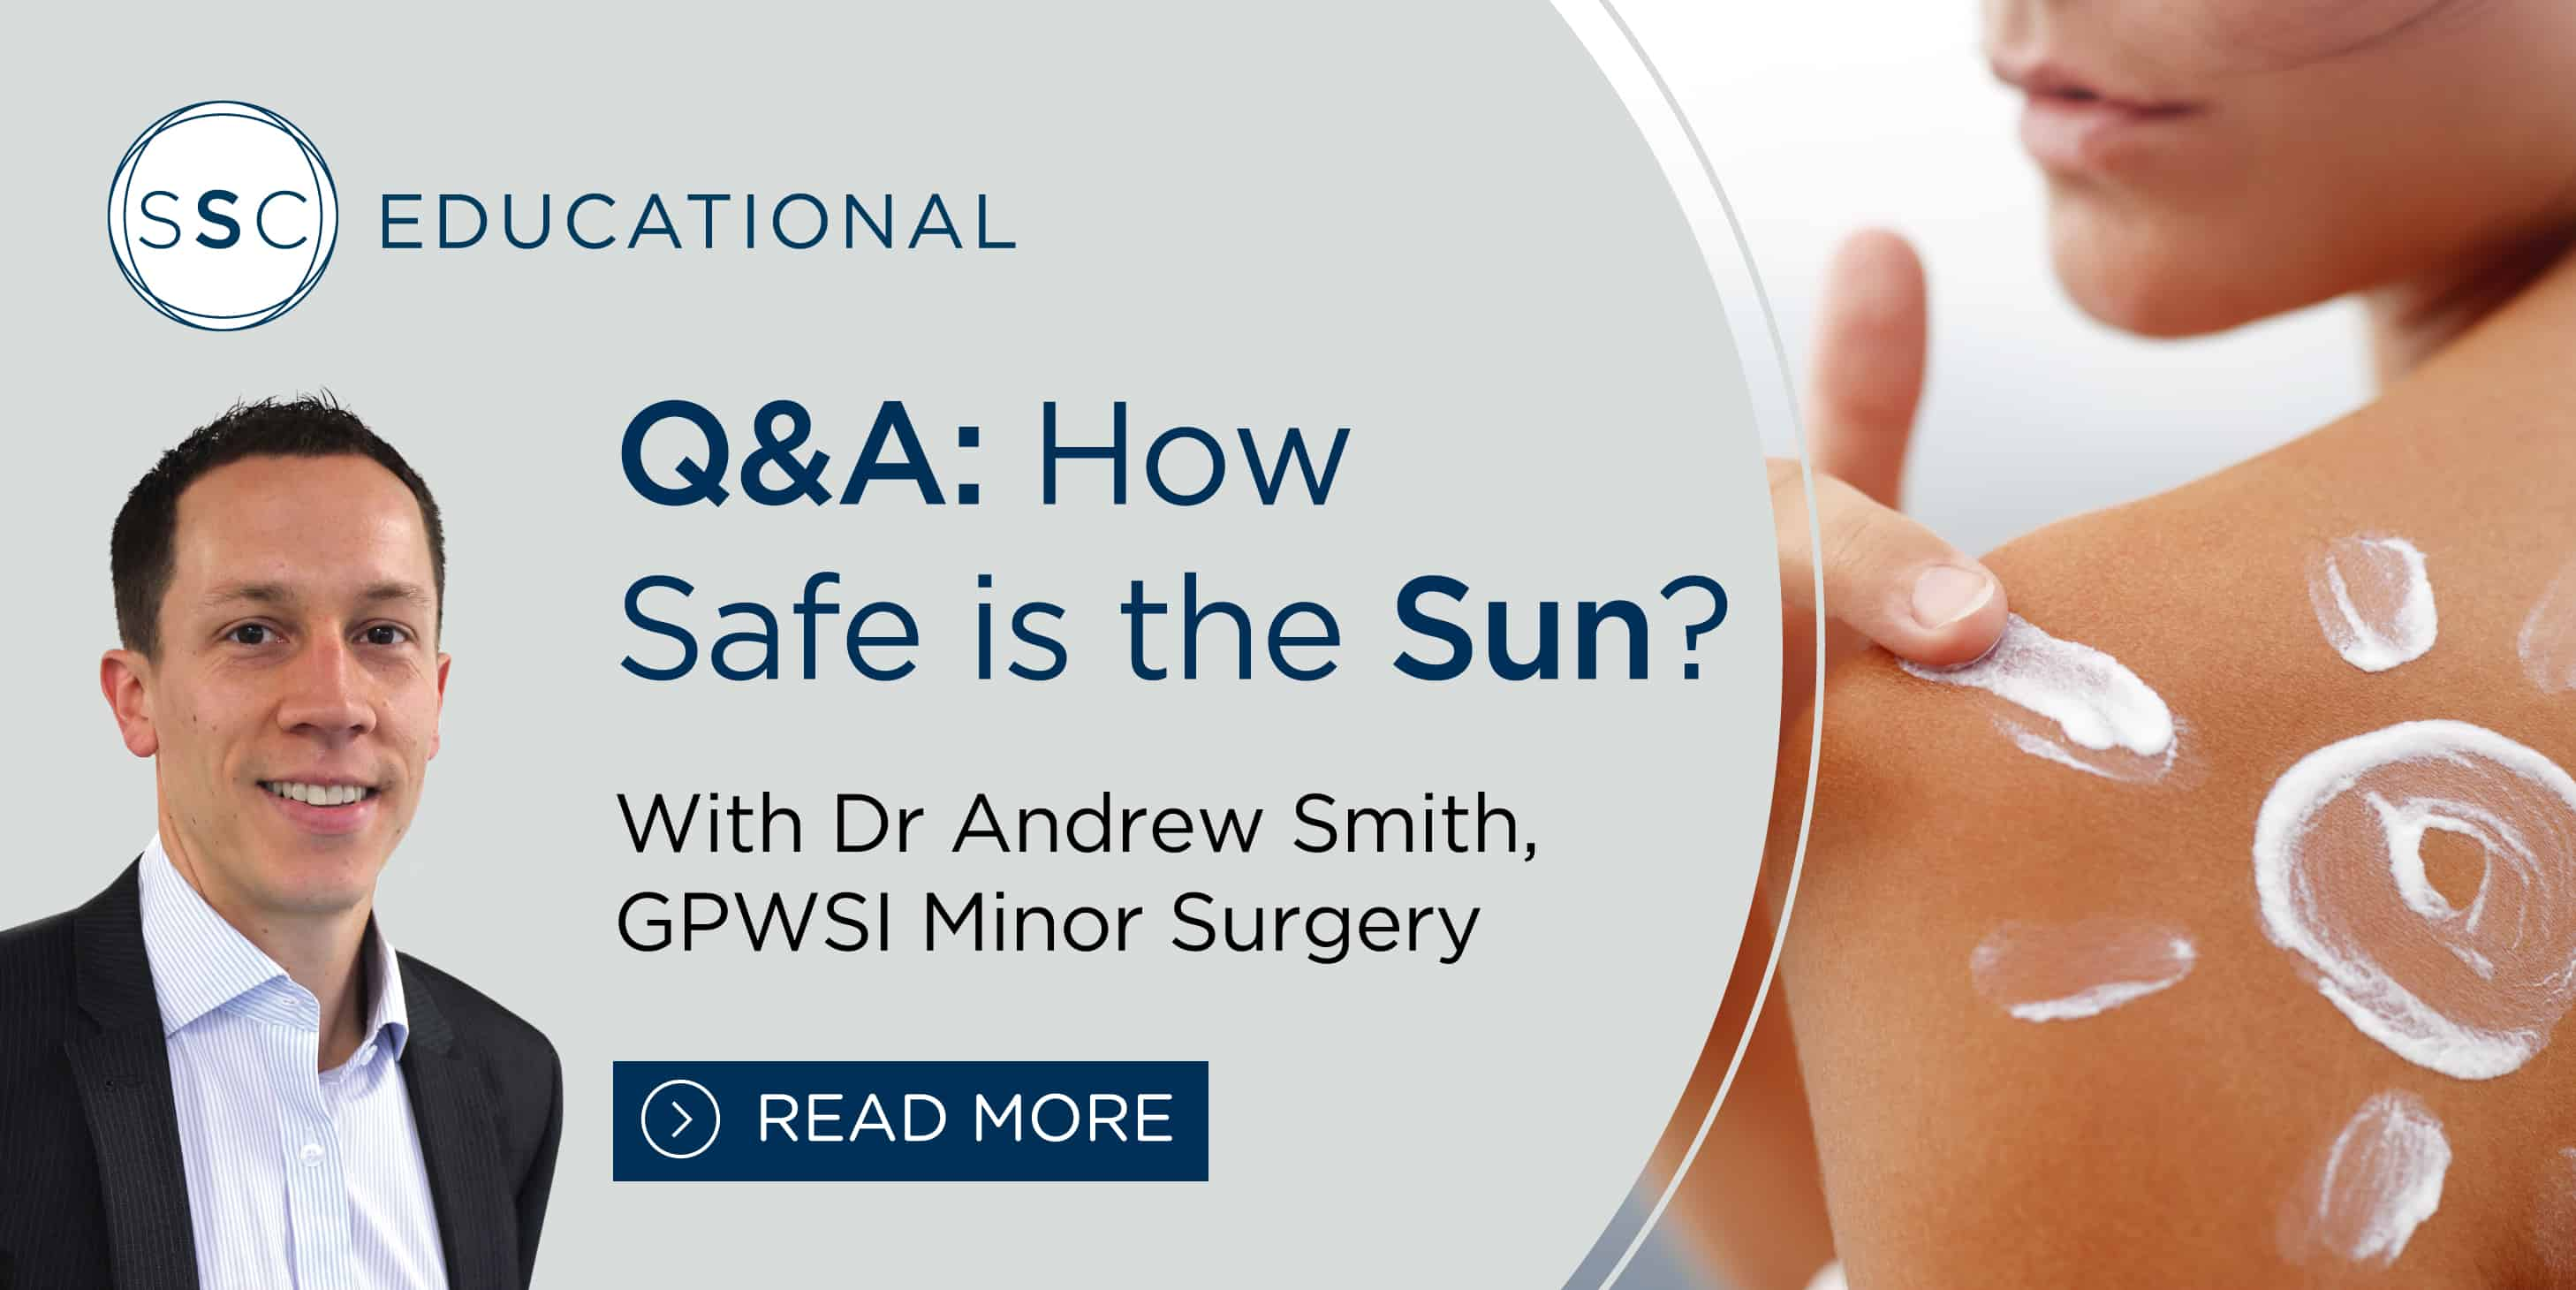 Summer Sun Skin Safety - Q&A with Dr Andrew Smith